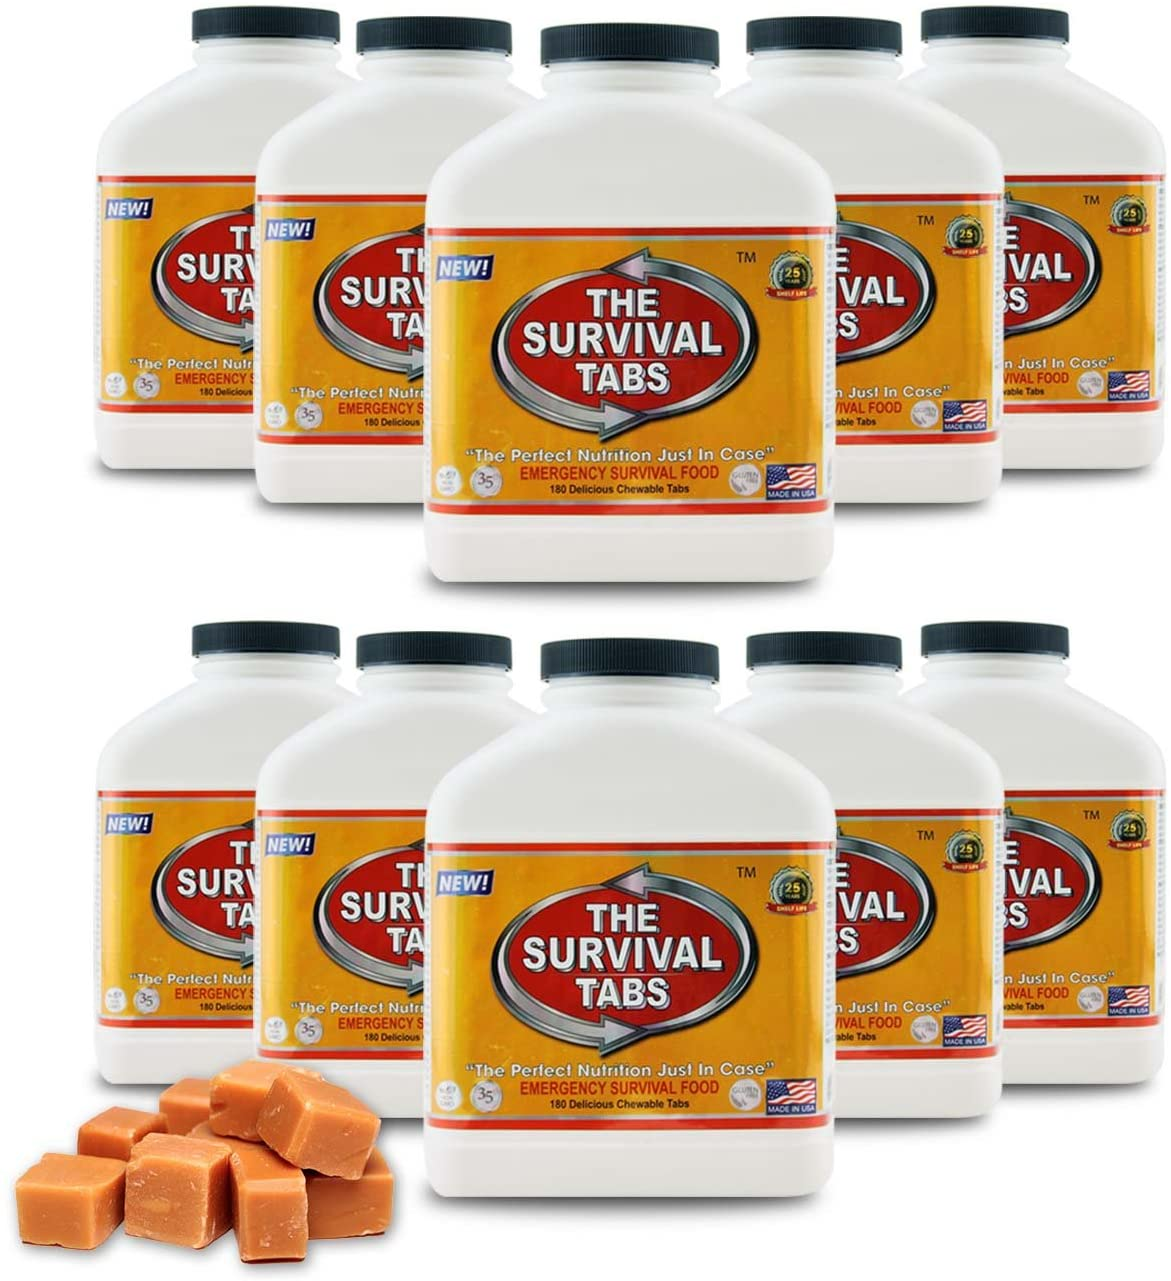 Food Storage 15-day Food Supply x 10 Bottles Gluten Free and Non-GMO 25 Years Shelf Life – Butterscotch Flavor.